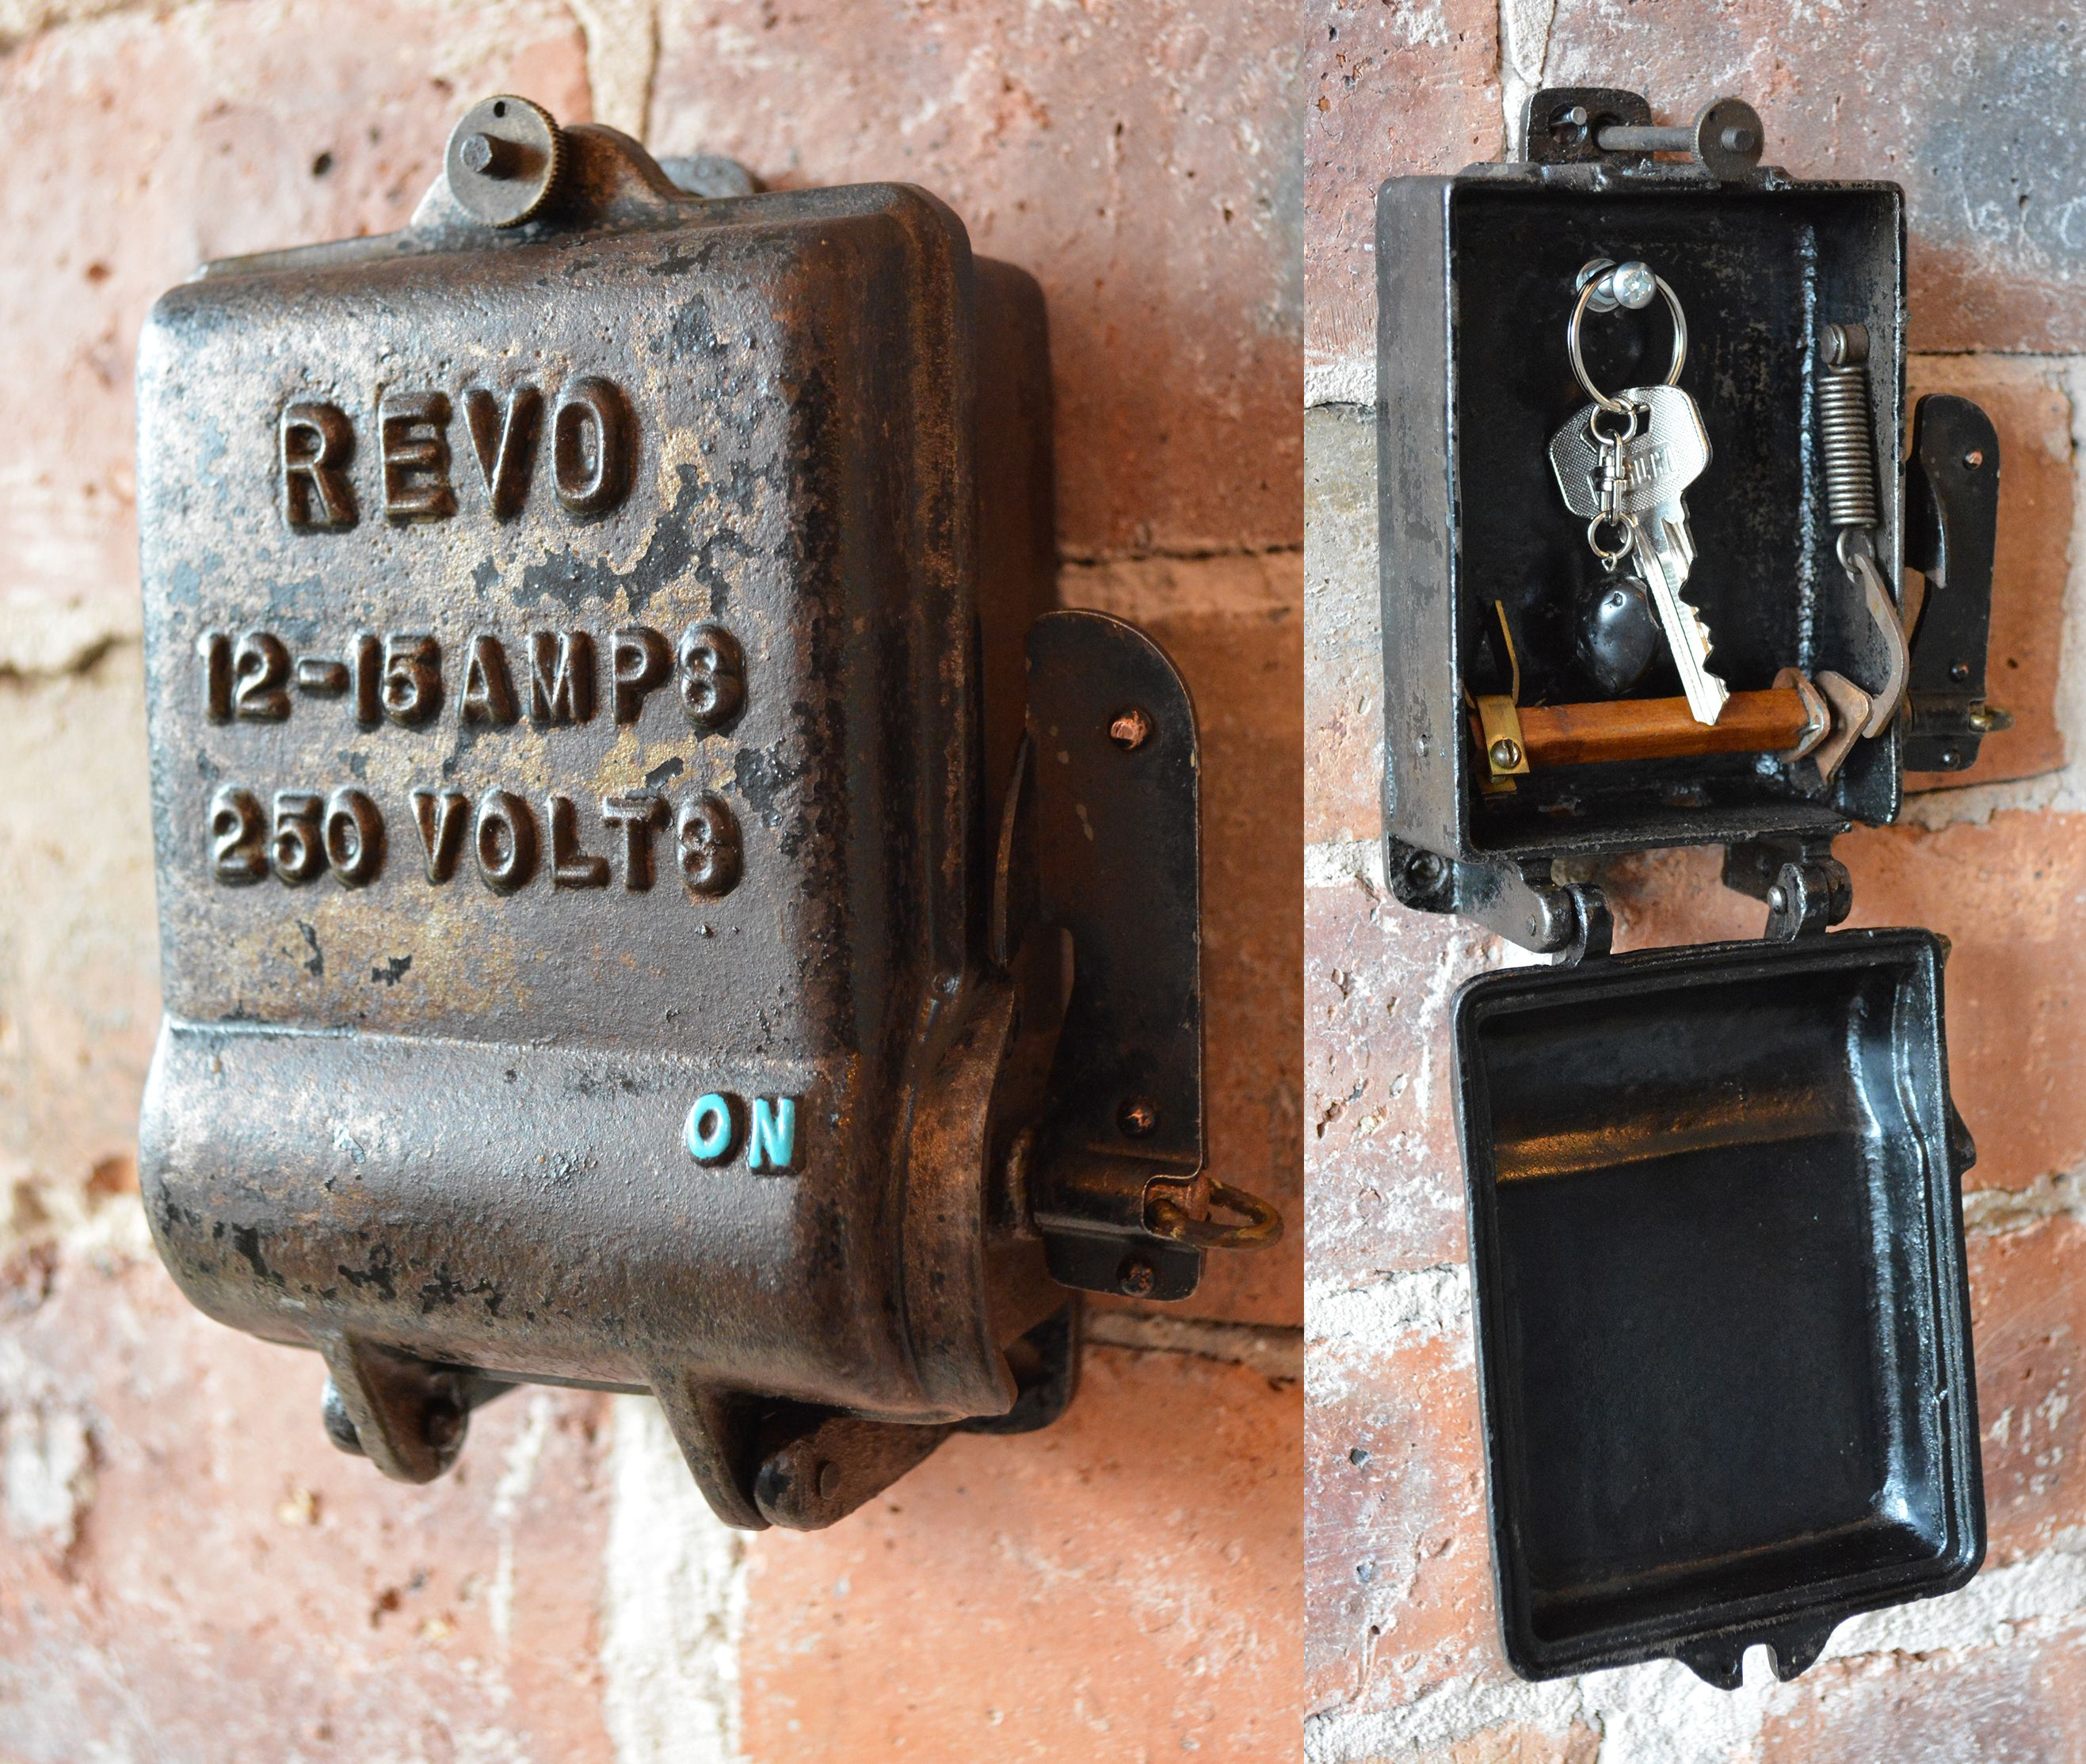 ddebd9ff65210514eb0d60b0b47283cd cast iron key storage converted from an antique 1940's revo fuse antique fuse box at reclaimingppi.co